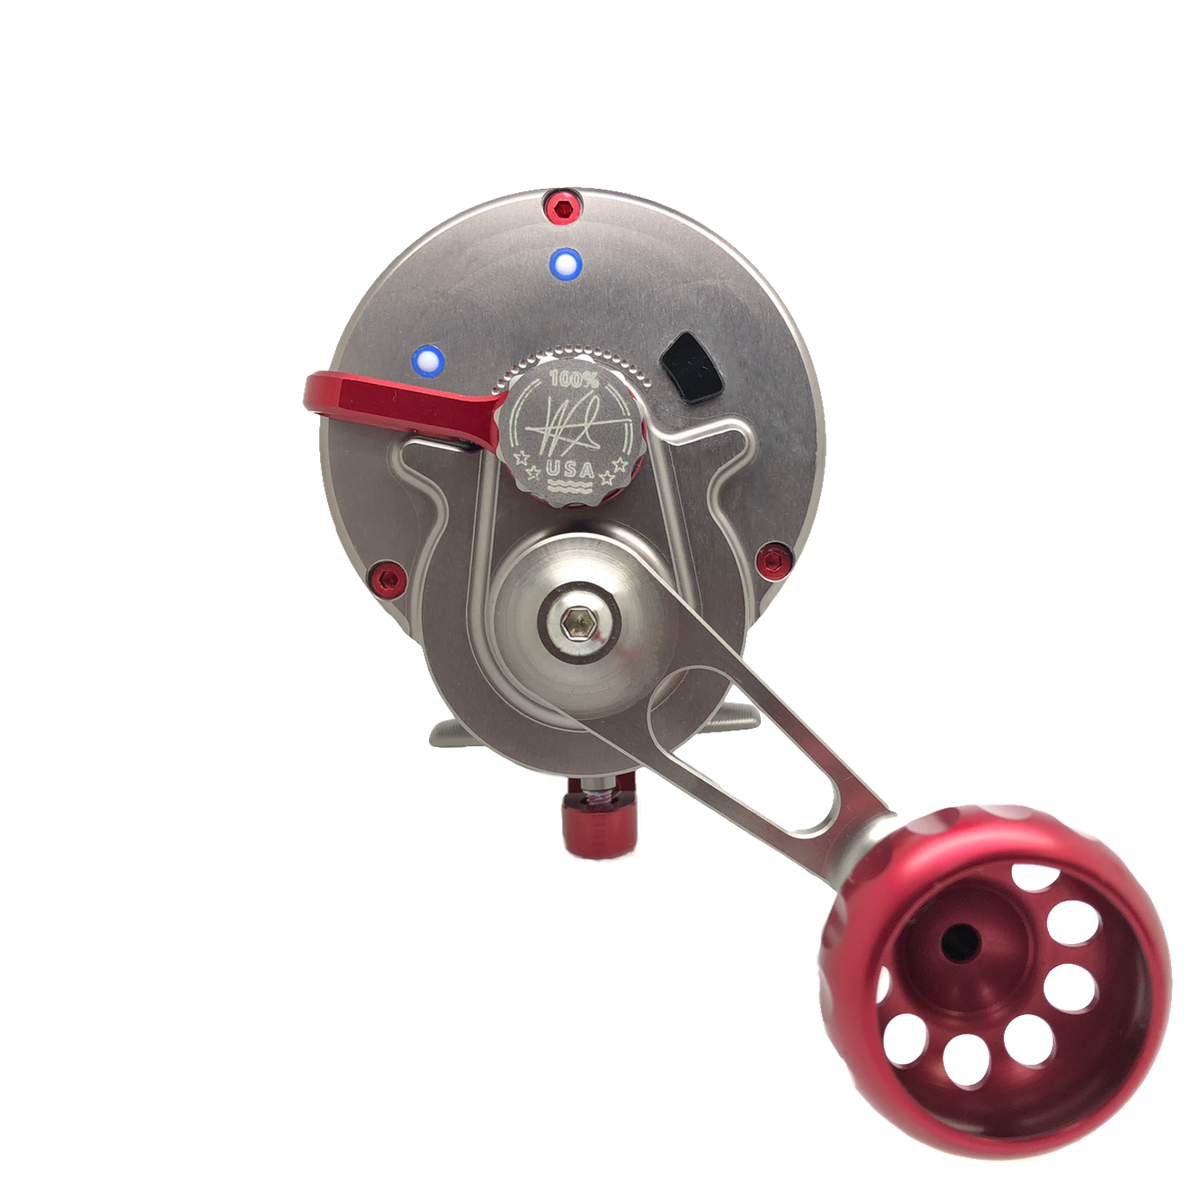 SEiGLER OS Conventional lever drag fishing reel in red accents and Gunmetal anodized finish, American made, made in Virginia Lifetime warranty